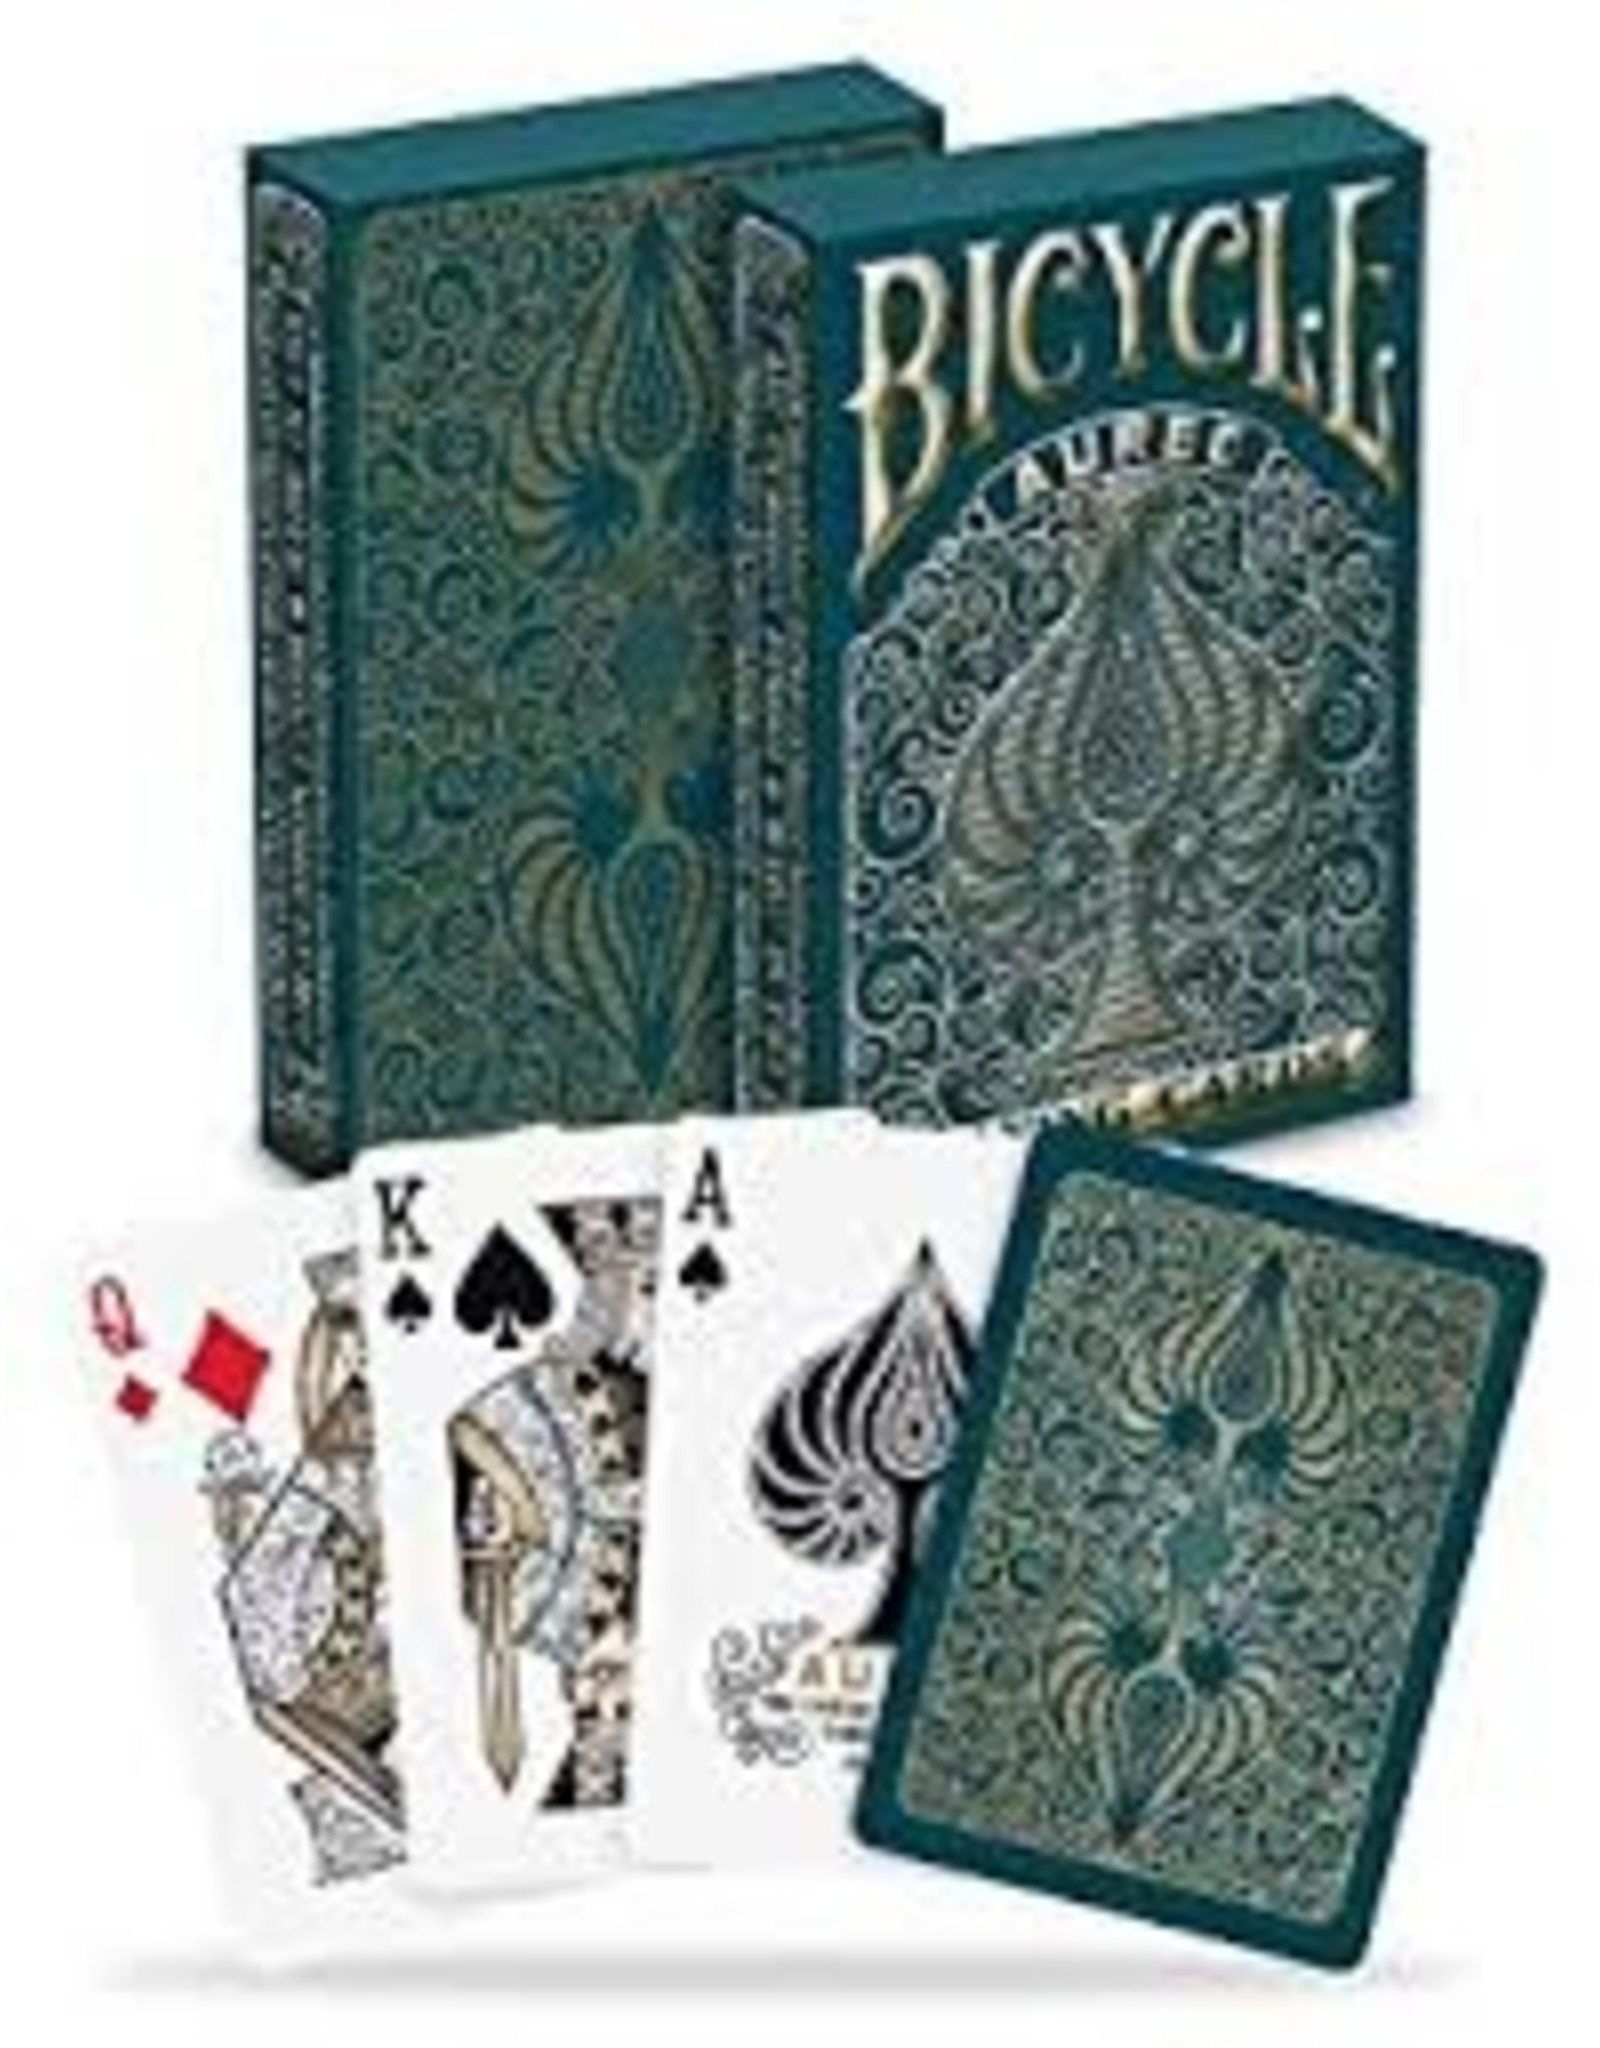 US Playing Card Co. Bicycle Aureo Deck